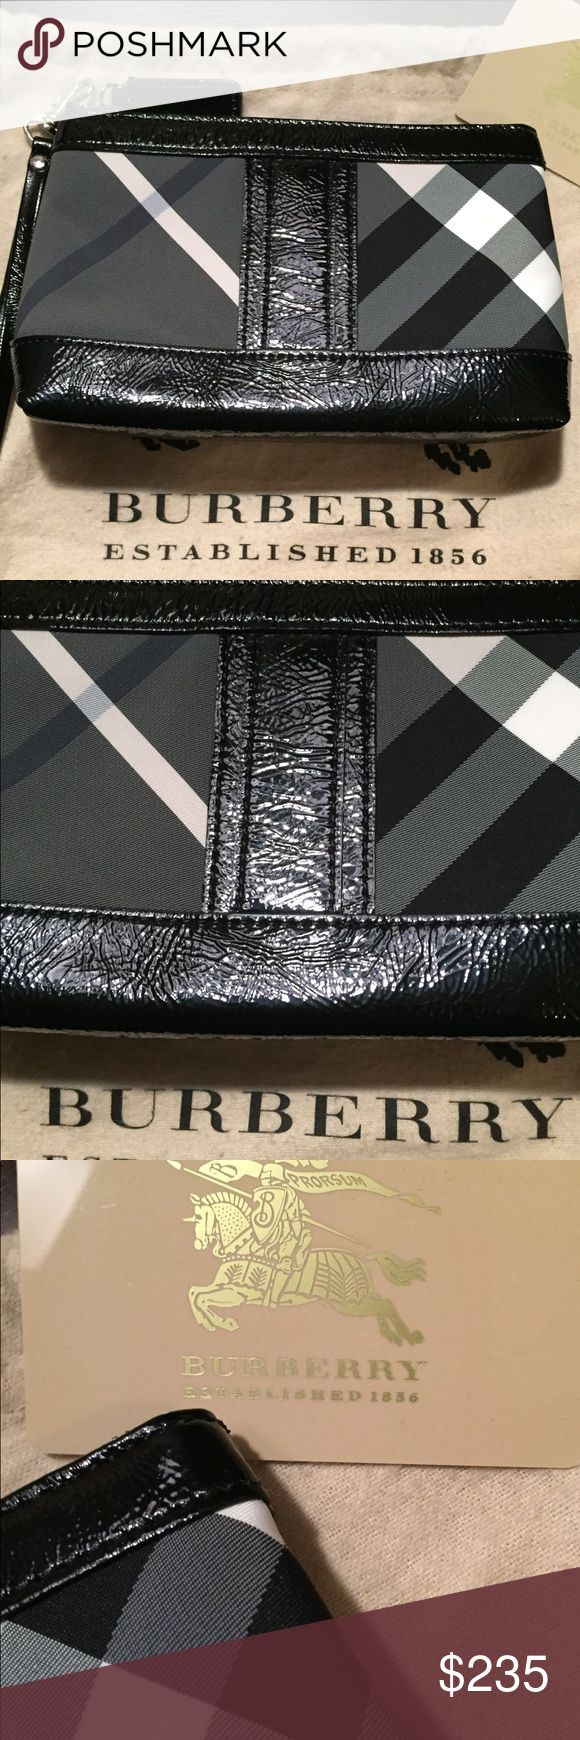 Burberry beat check small cosmetic clutch/wristlet Like new condition used for only one month! No stains or signs of wear. I used a generic wristlet strap that goes perfectly to make it a wristlet which will be included; as well as original dust bag and Burberry card.  It has been stored in its dust bag in my closet. Smoke free home. Burberry Bags Clutches & Wristlets